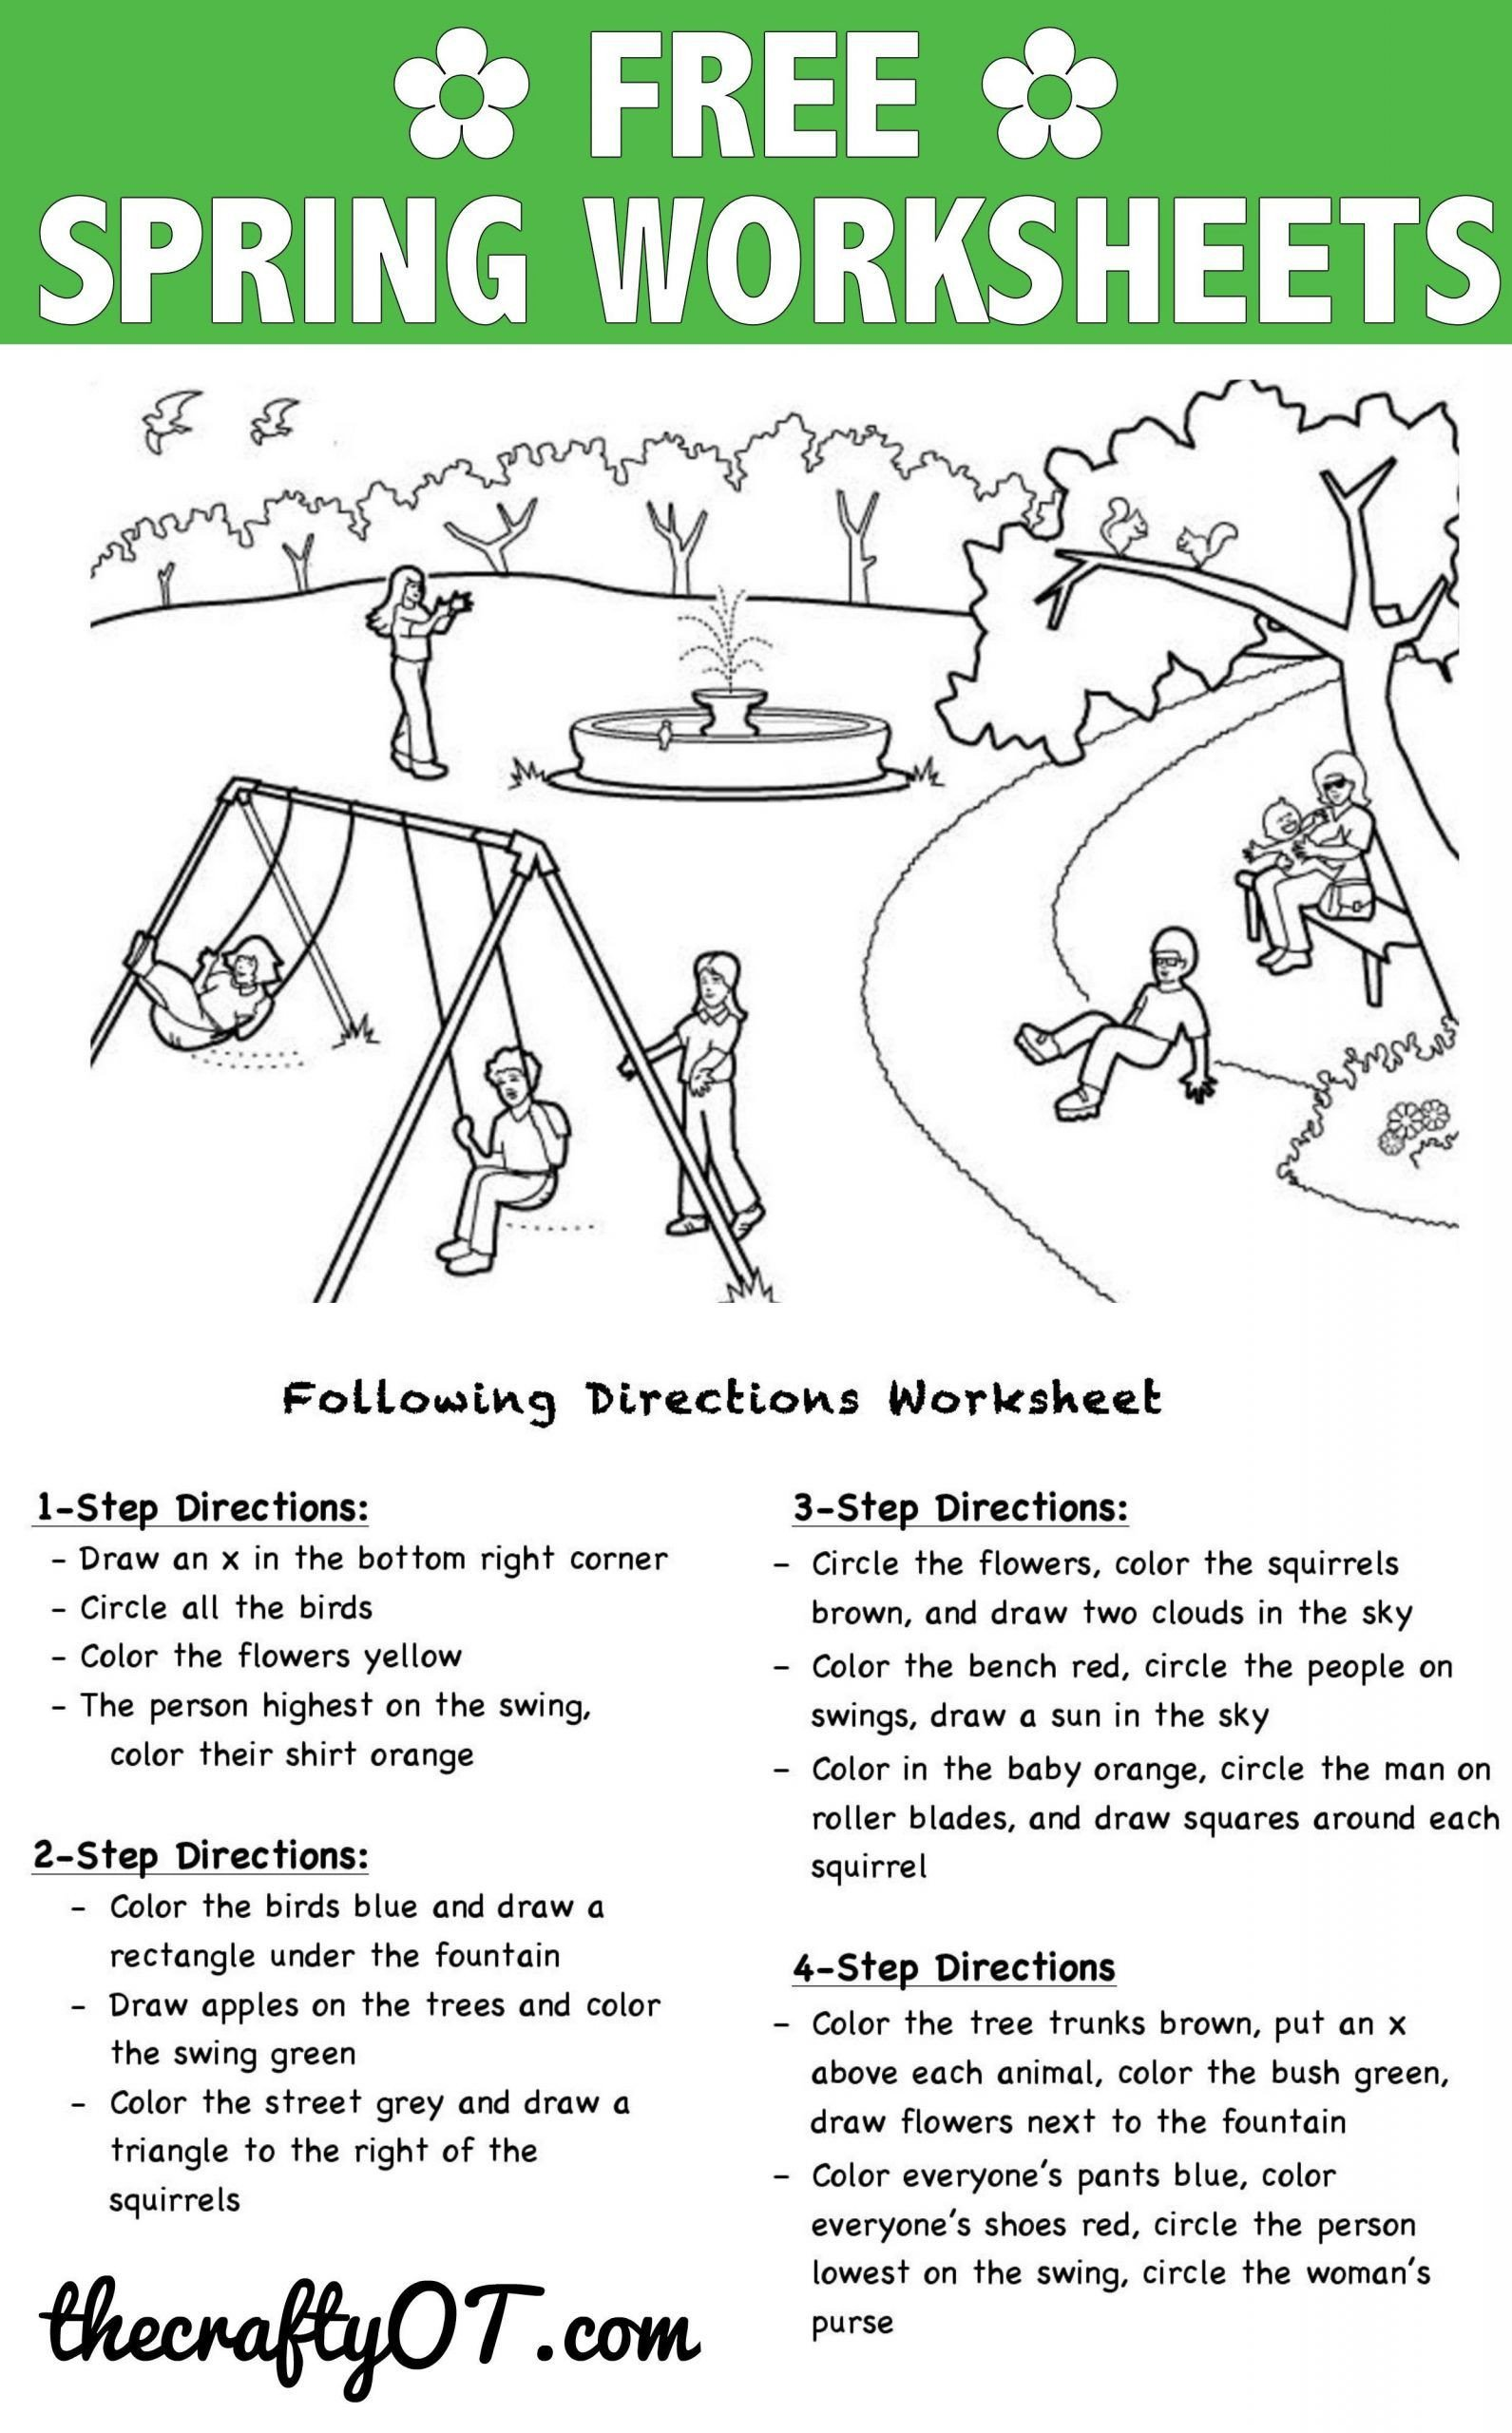 Following Directions Worksheets for Kindergarten Pin On Kindergarten Worksheets Free Printable